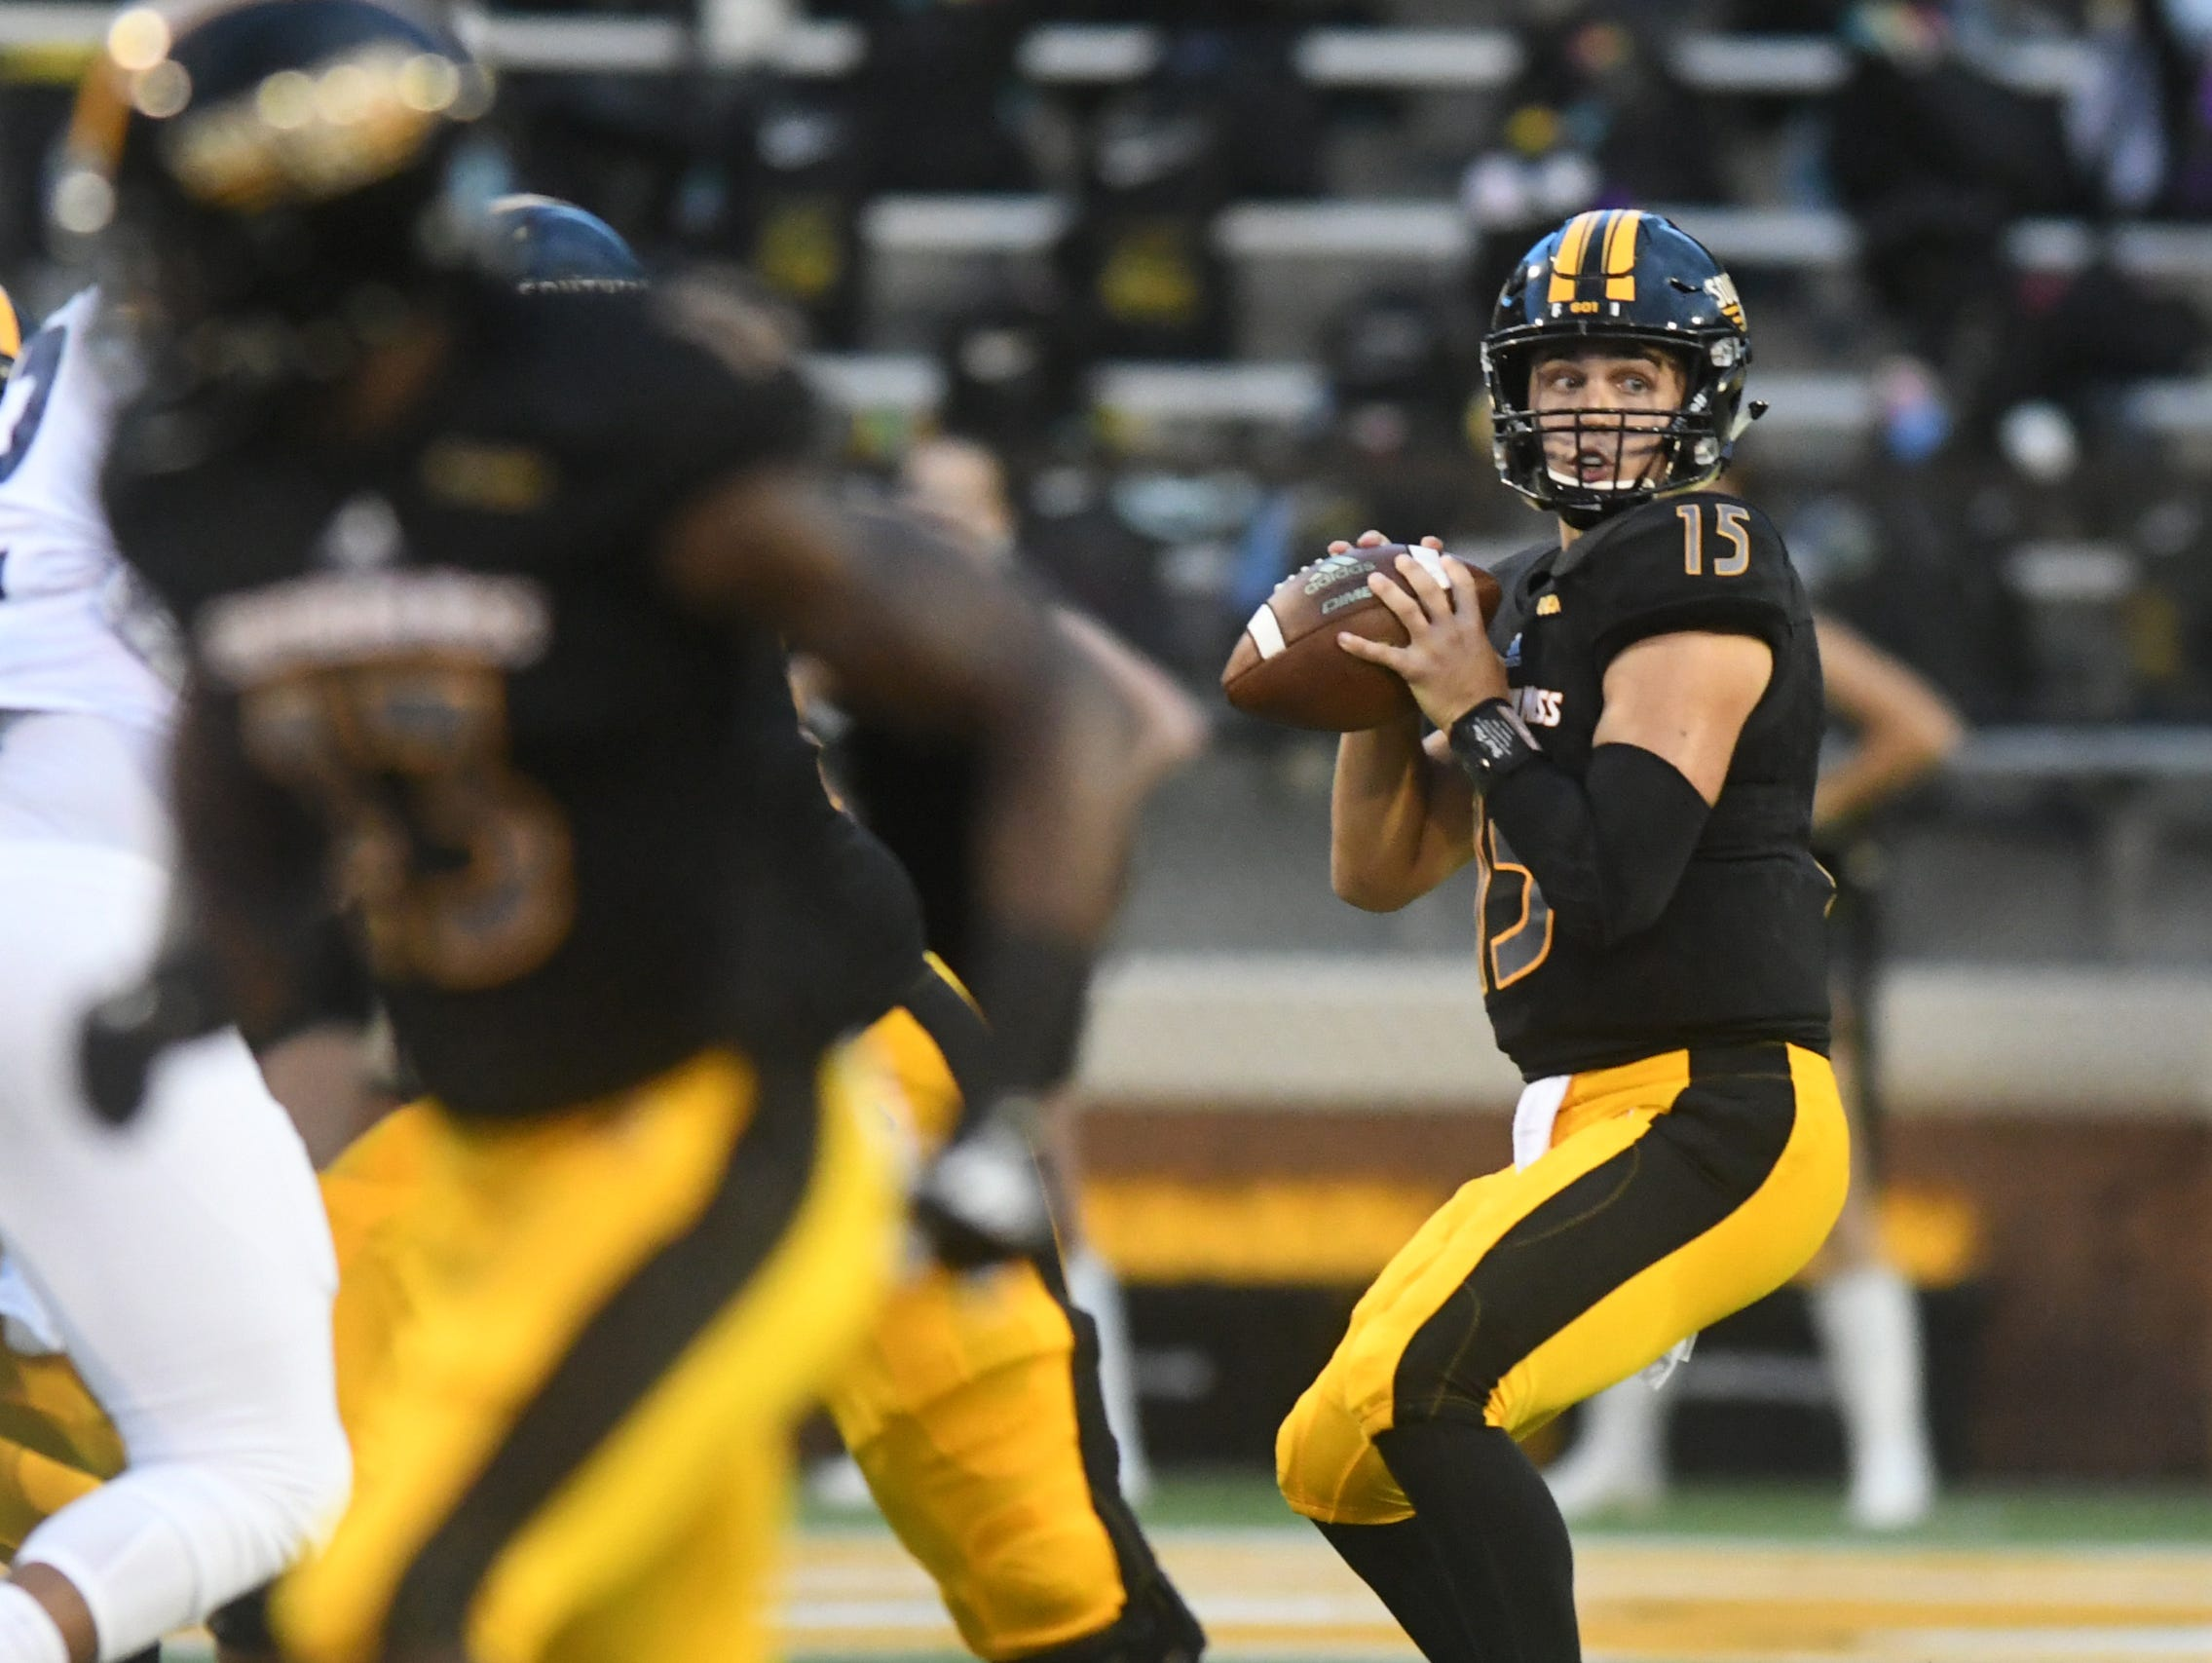 Southern Miss quarterback Jack Abraham looks for a receiver in a game against Rice at M.M. Roberts Stadium on Saturday, September 22, 2018.